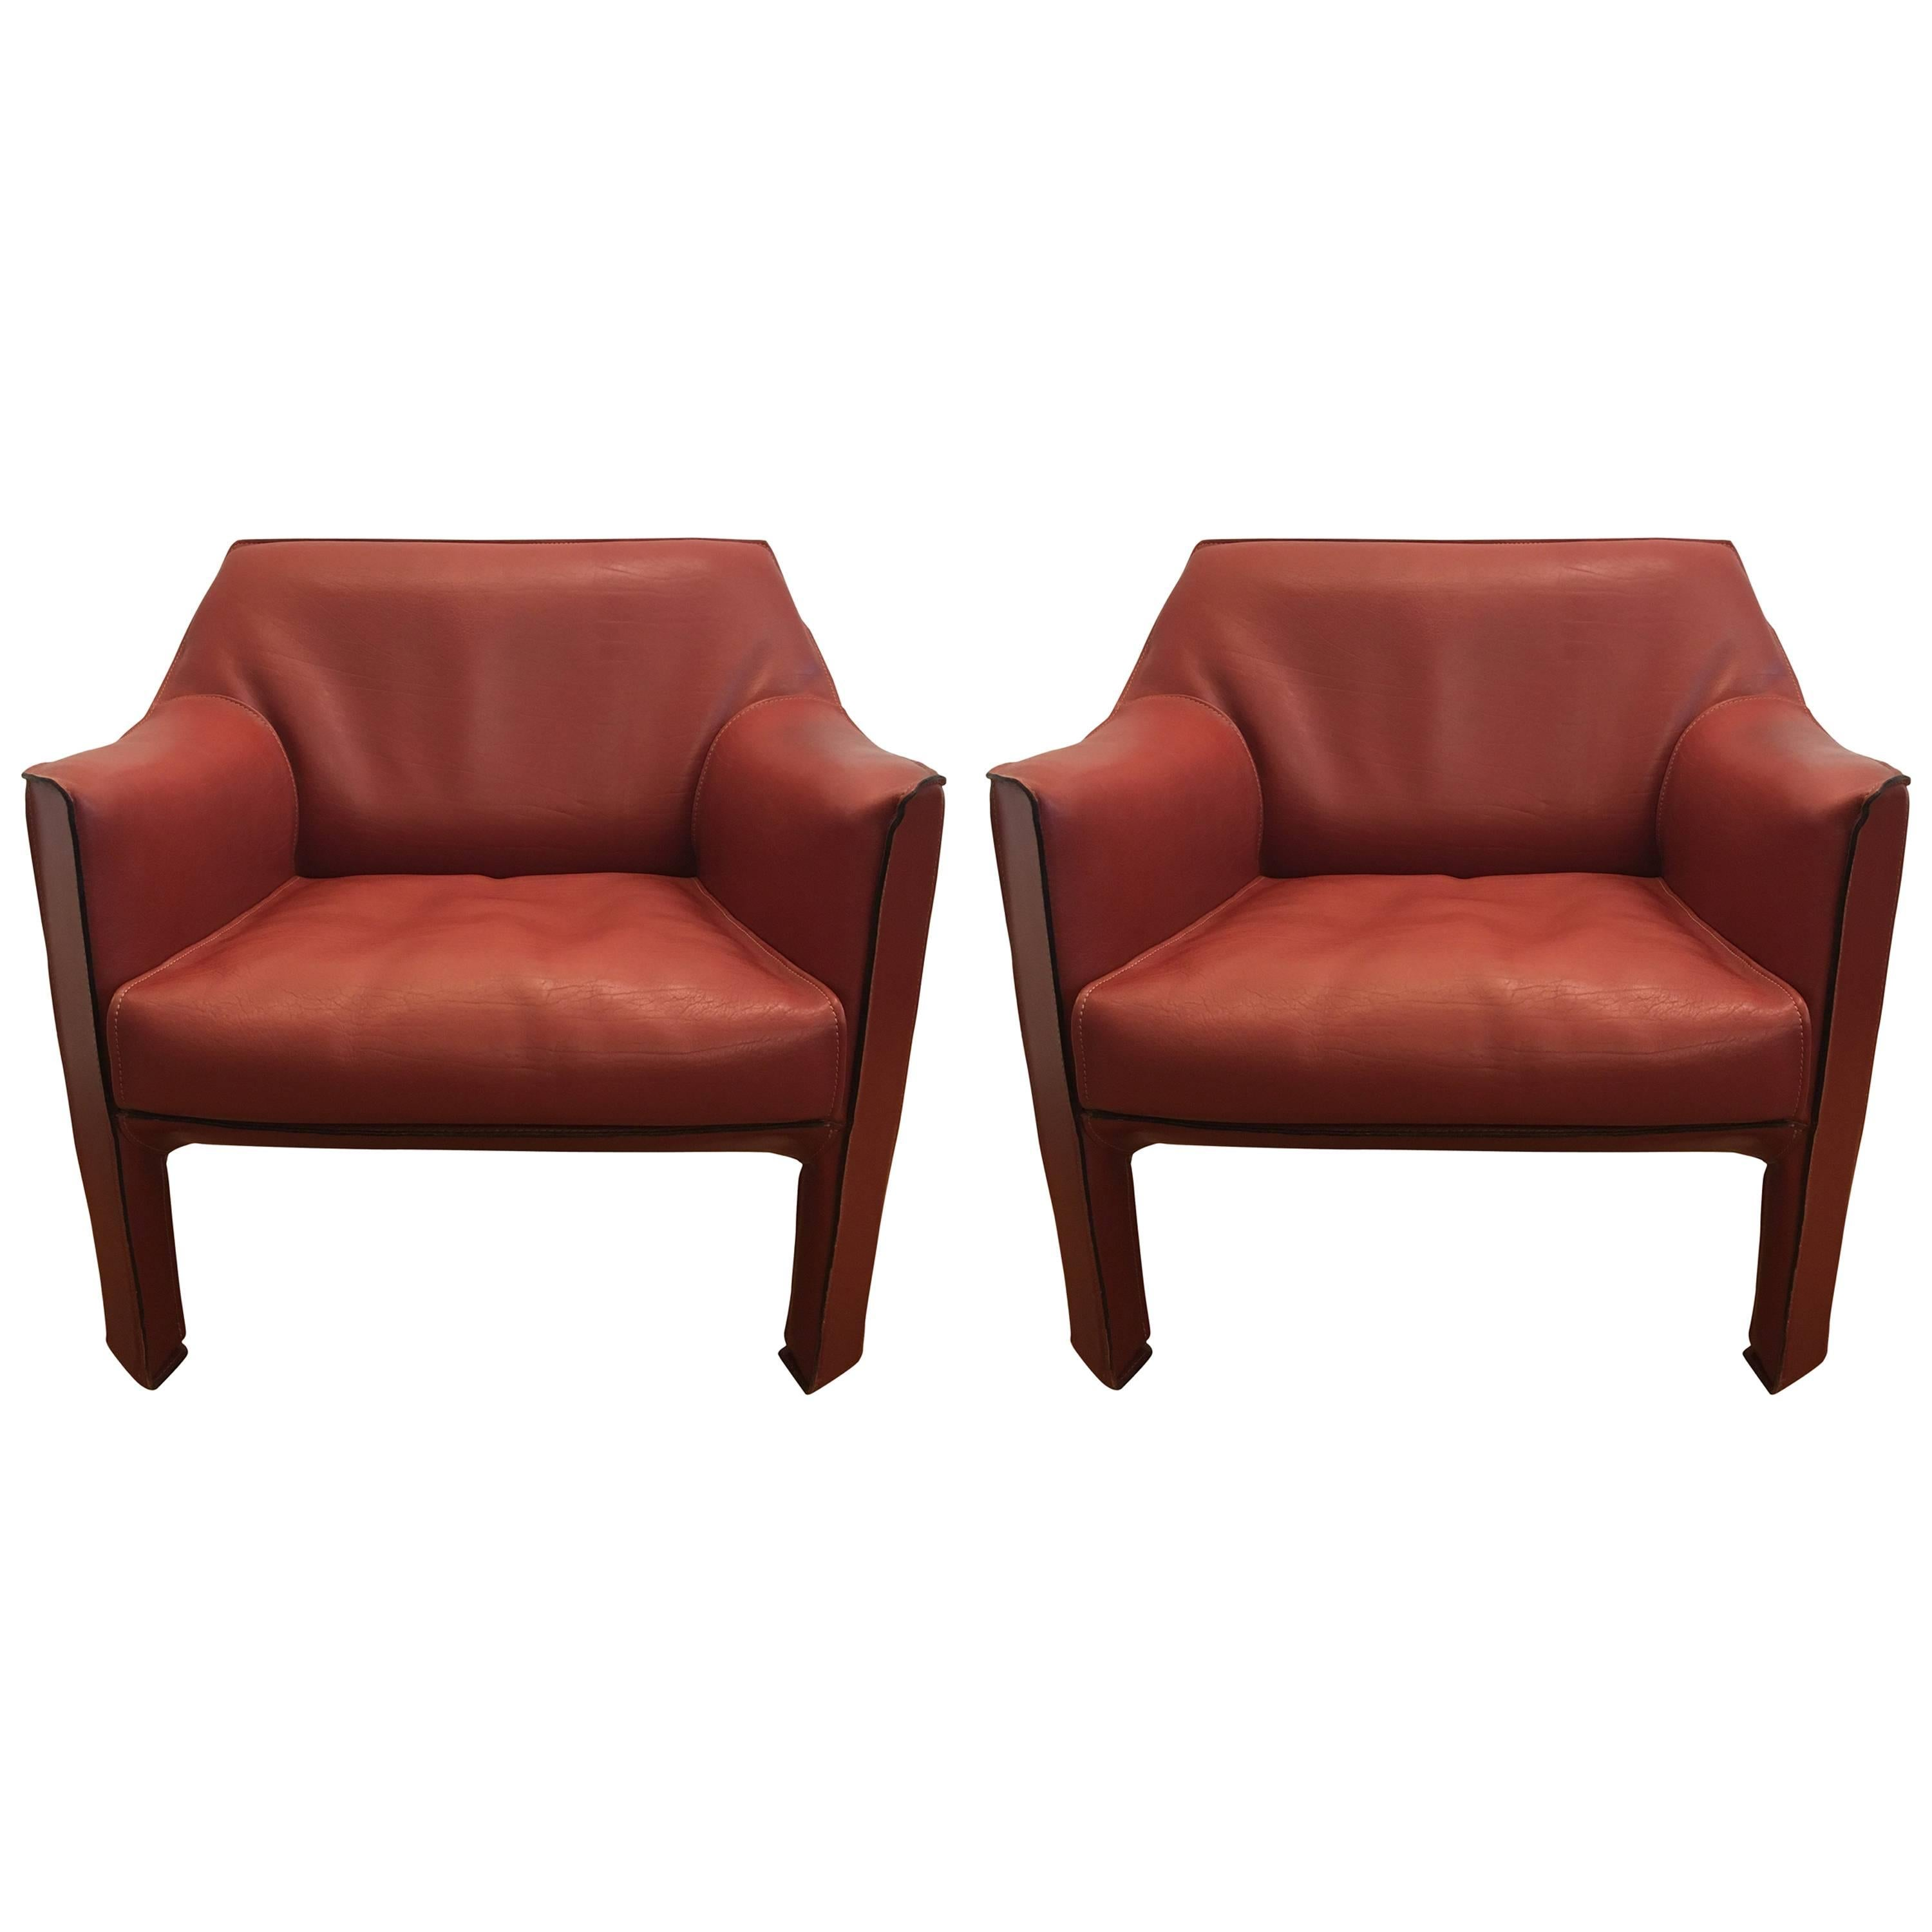 Beau Large Pair Of Mario Bellini Cab Lounge Chairs For Sale